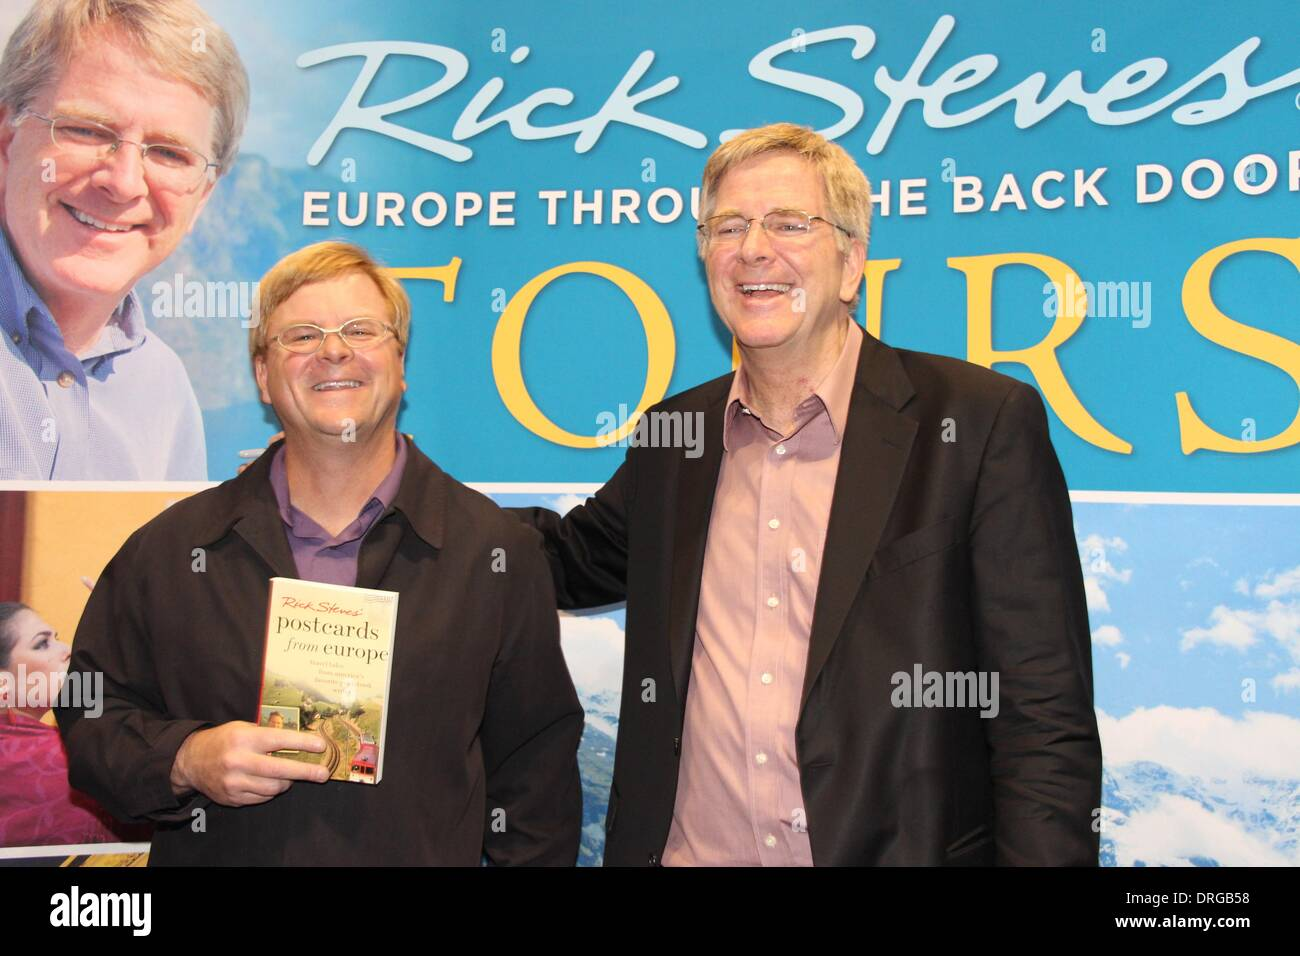 Santa Clara, California USA, 25 January, 2014 – PBS television travel show host Rick Steves meets his look-alike at the San Francisco Bay Area Travel and Adventure Show held at the Santa Clara Convention Center. Rick (right) has written over 50 travel guidebooks. His doppelganger Paul Richards (left) lives in San Jose, California and is often asked if he is Rick Steves, the travel expert. Credit: Lisa Werner/Alamy Live News - Stock Image